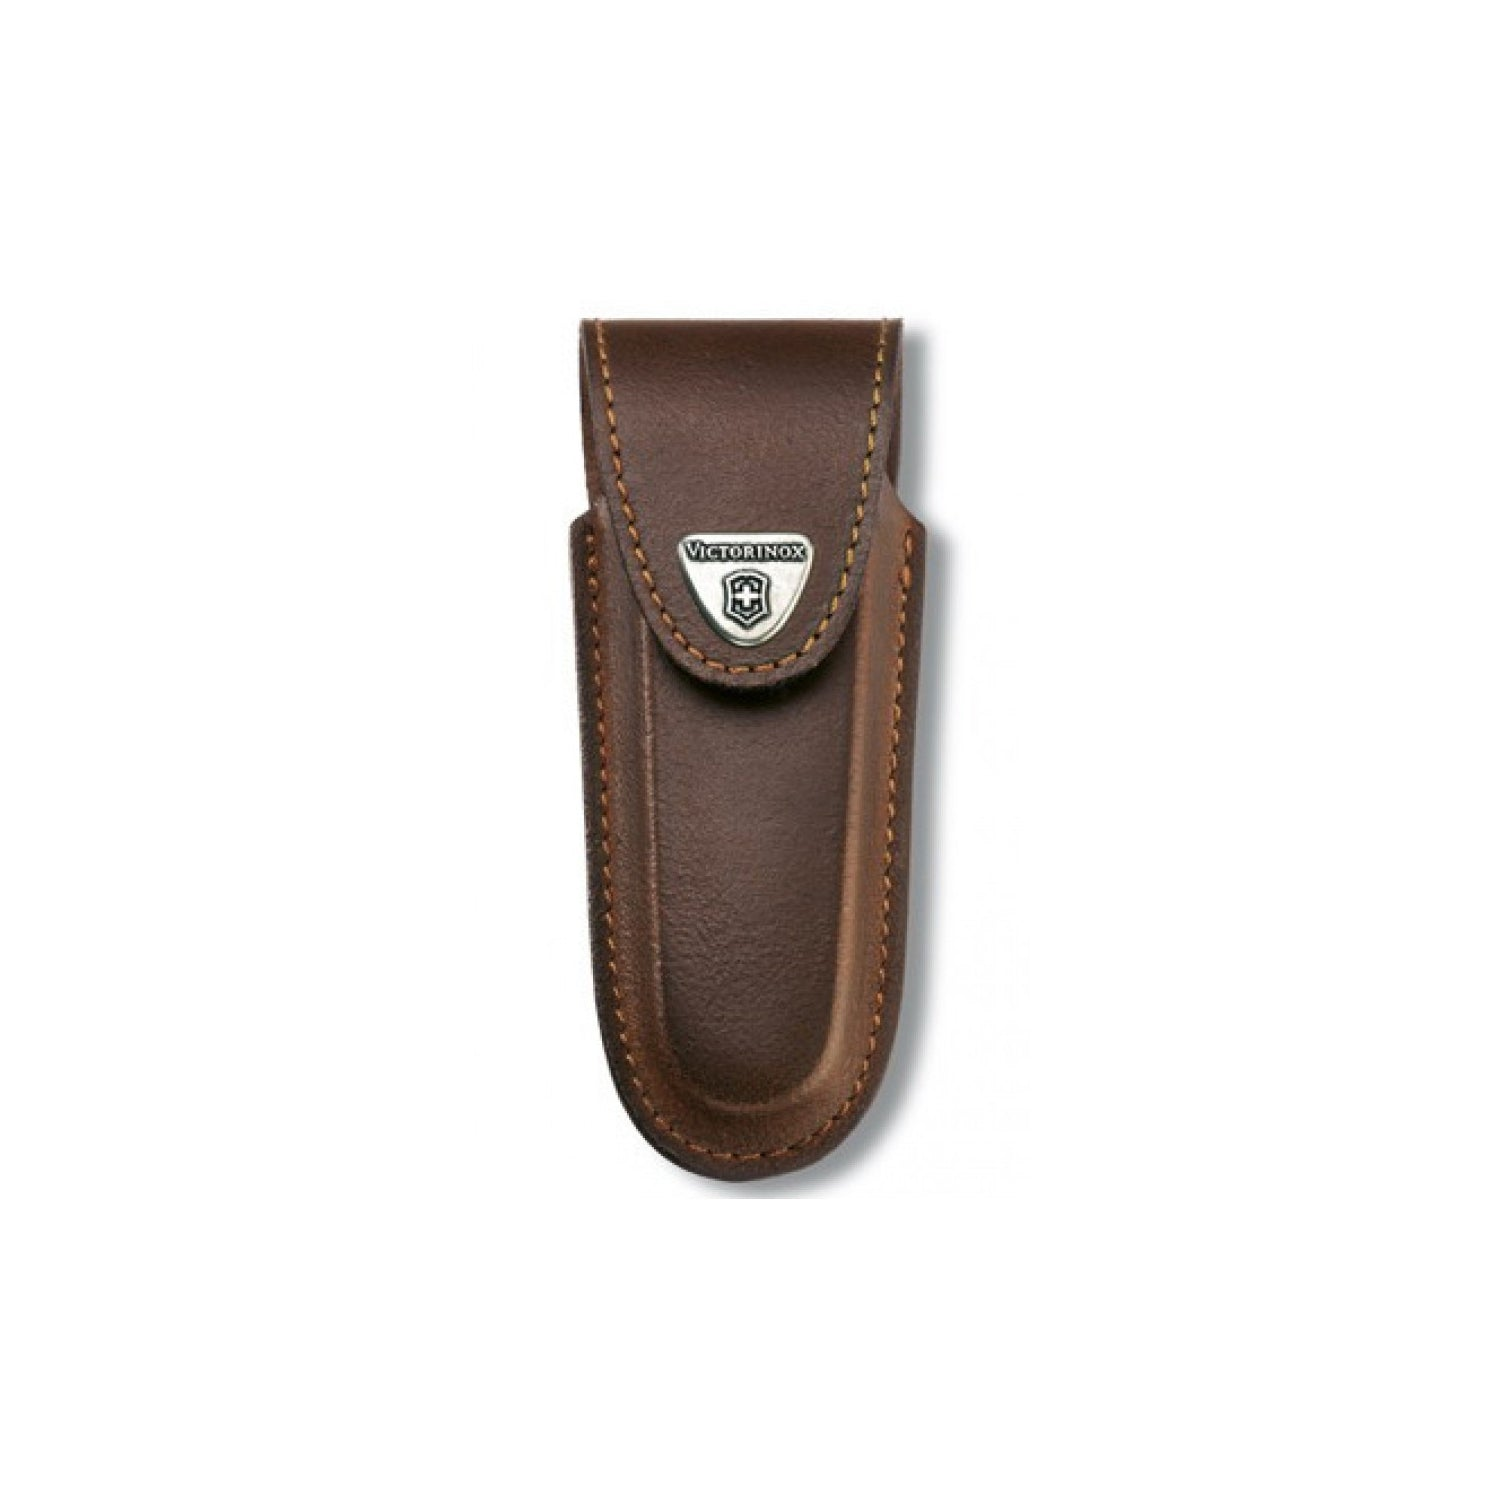 Victorinox Belt Pouch Leather With Velcro Closure